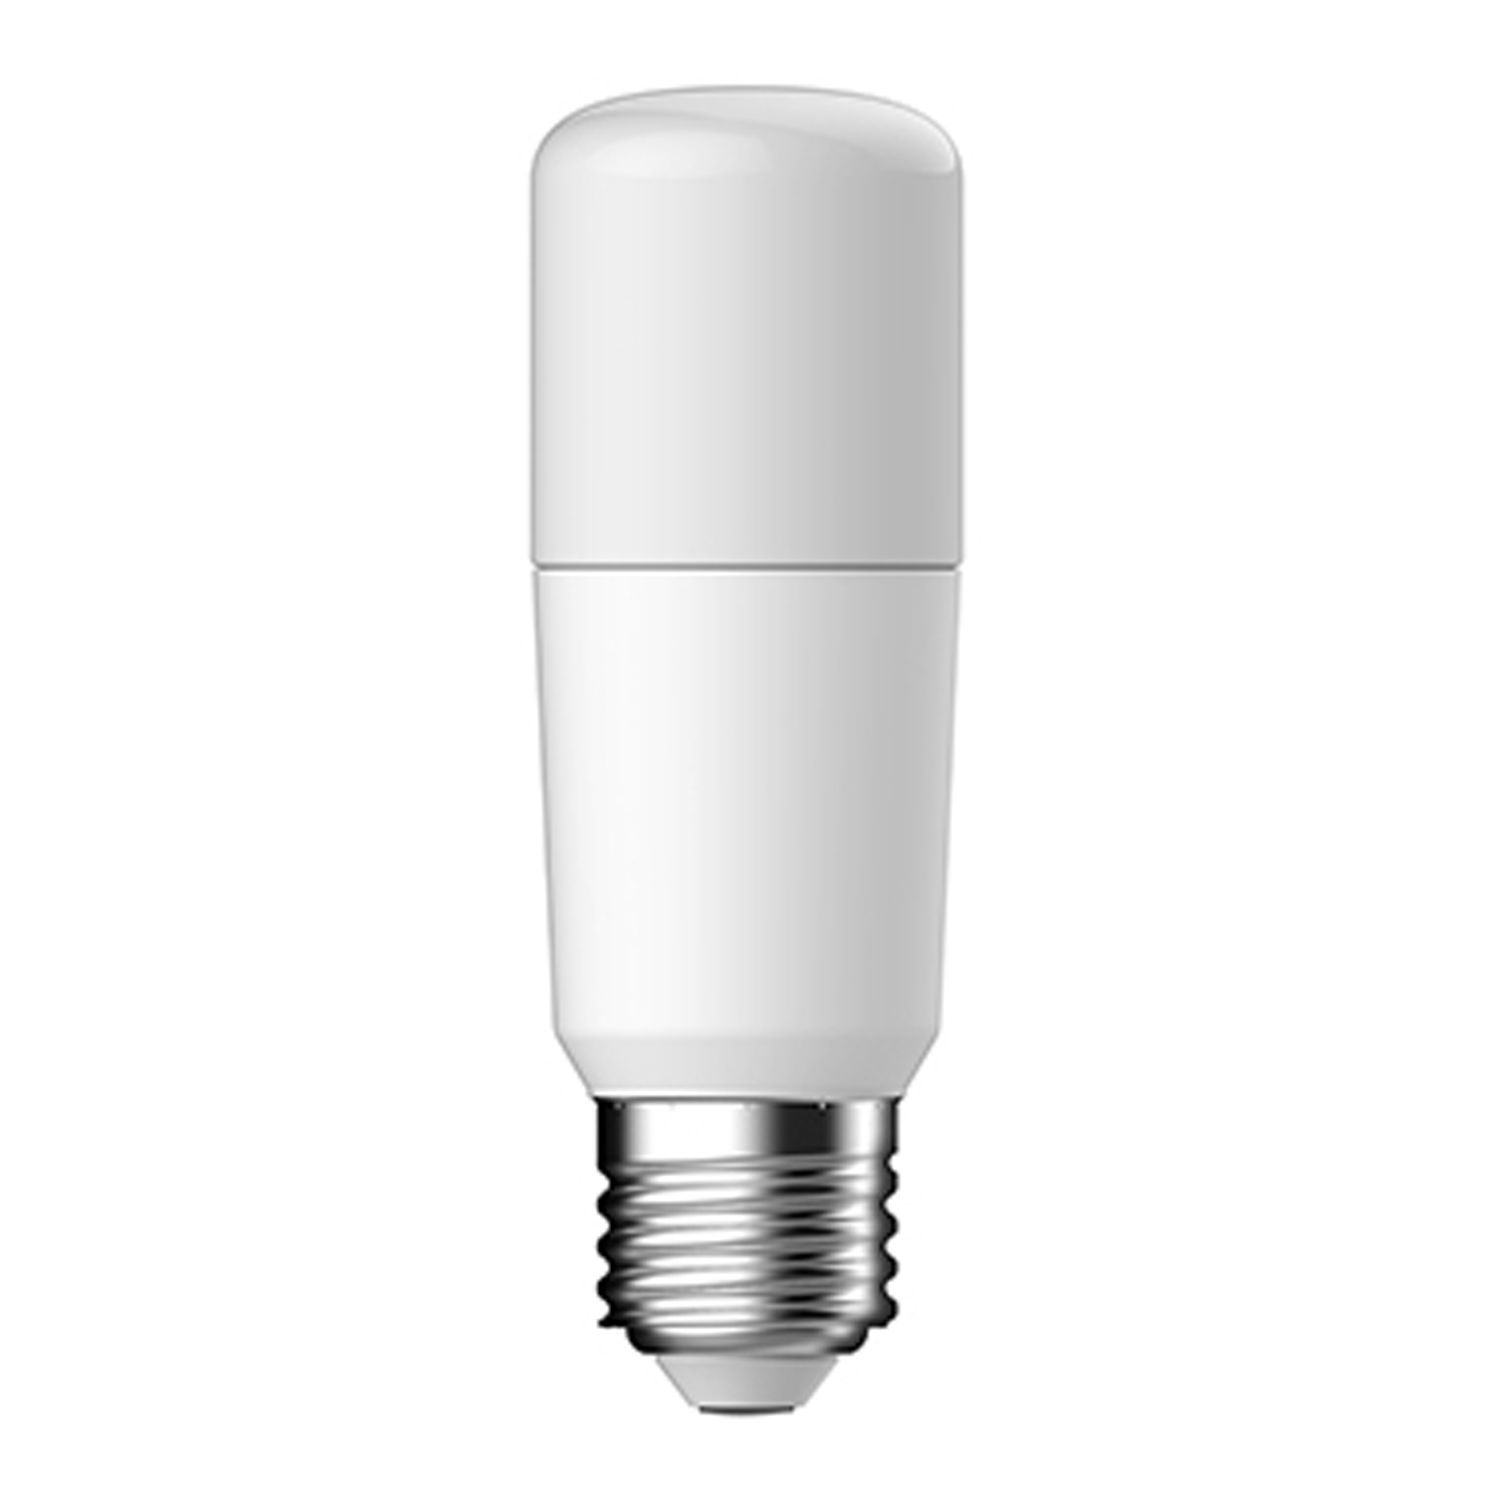 Tungsram Bright Stik LED E27 15W 865 Frosted | Daylight - Replaces 100W